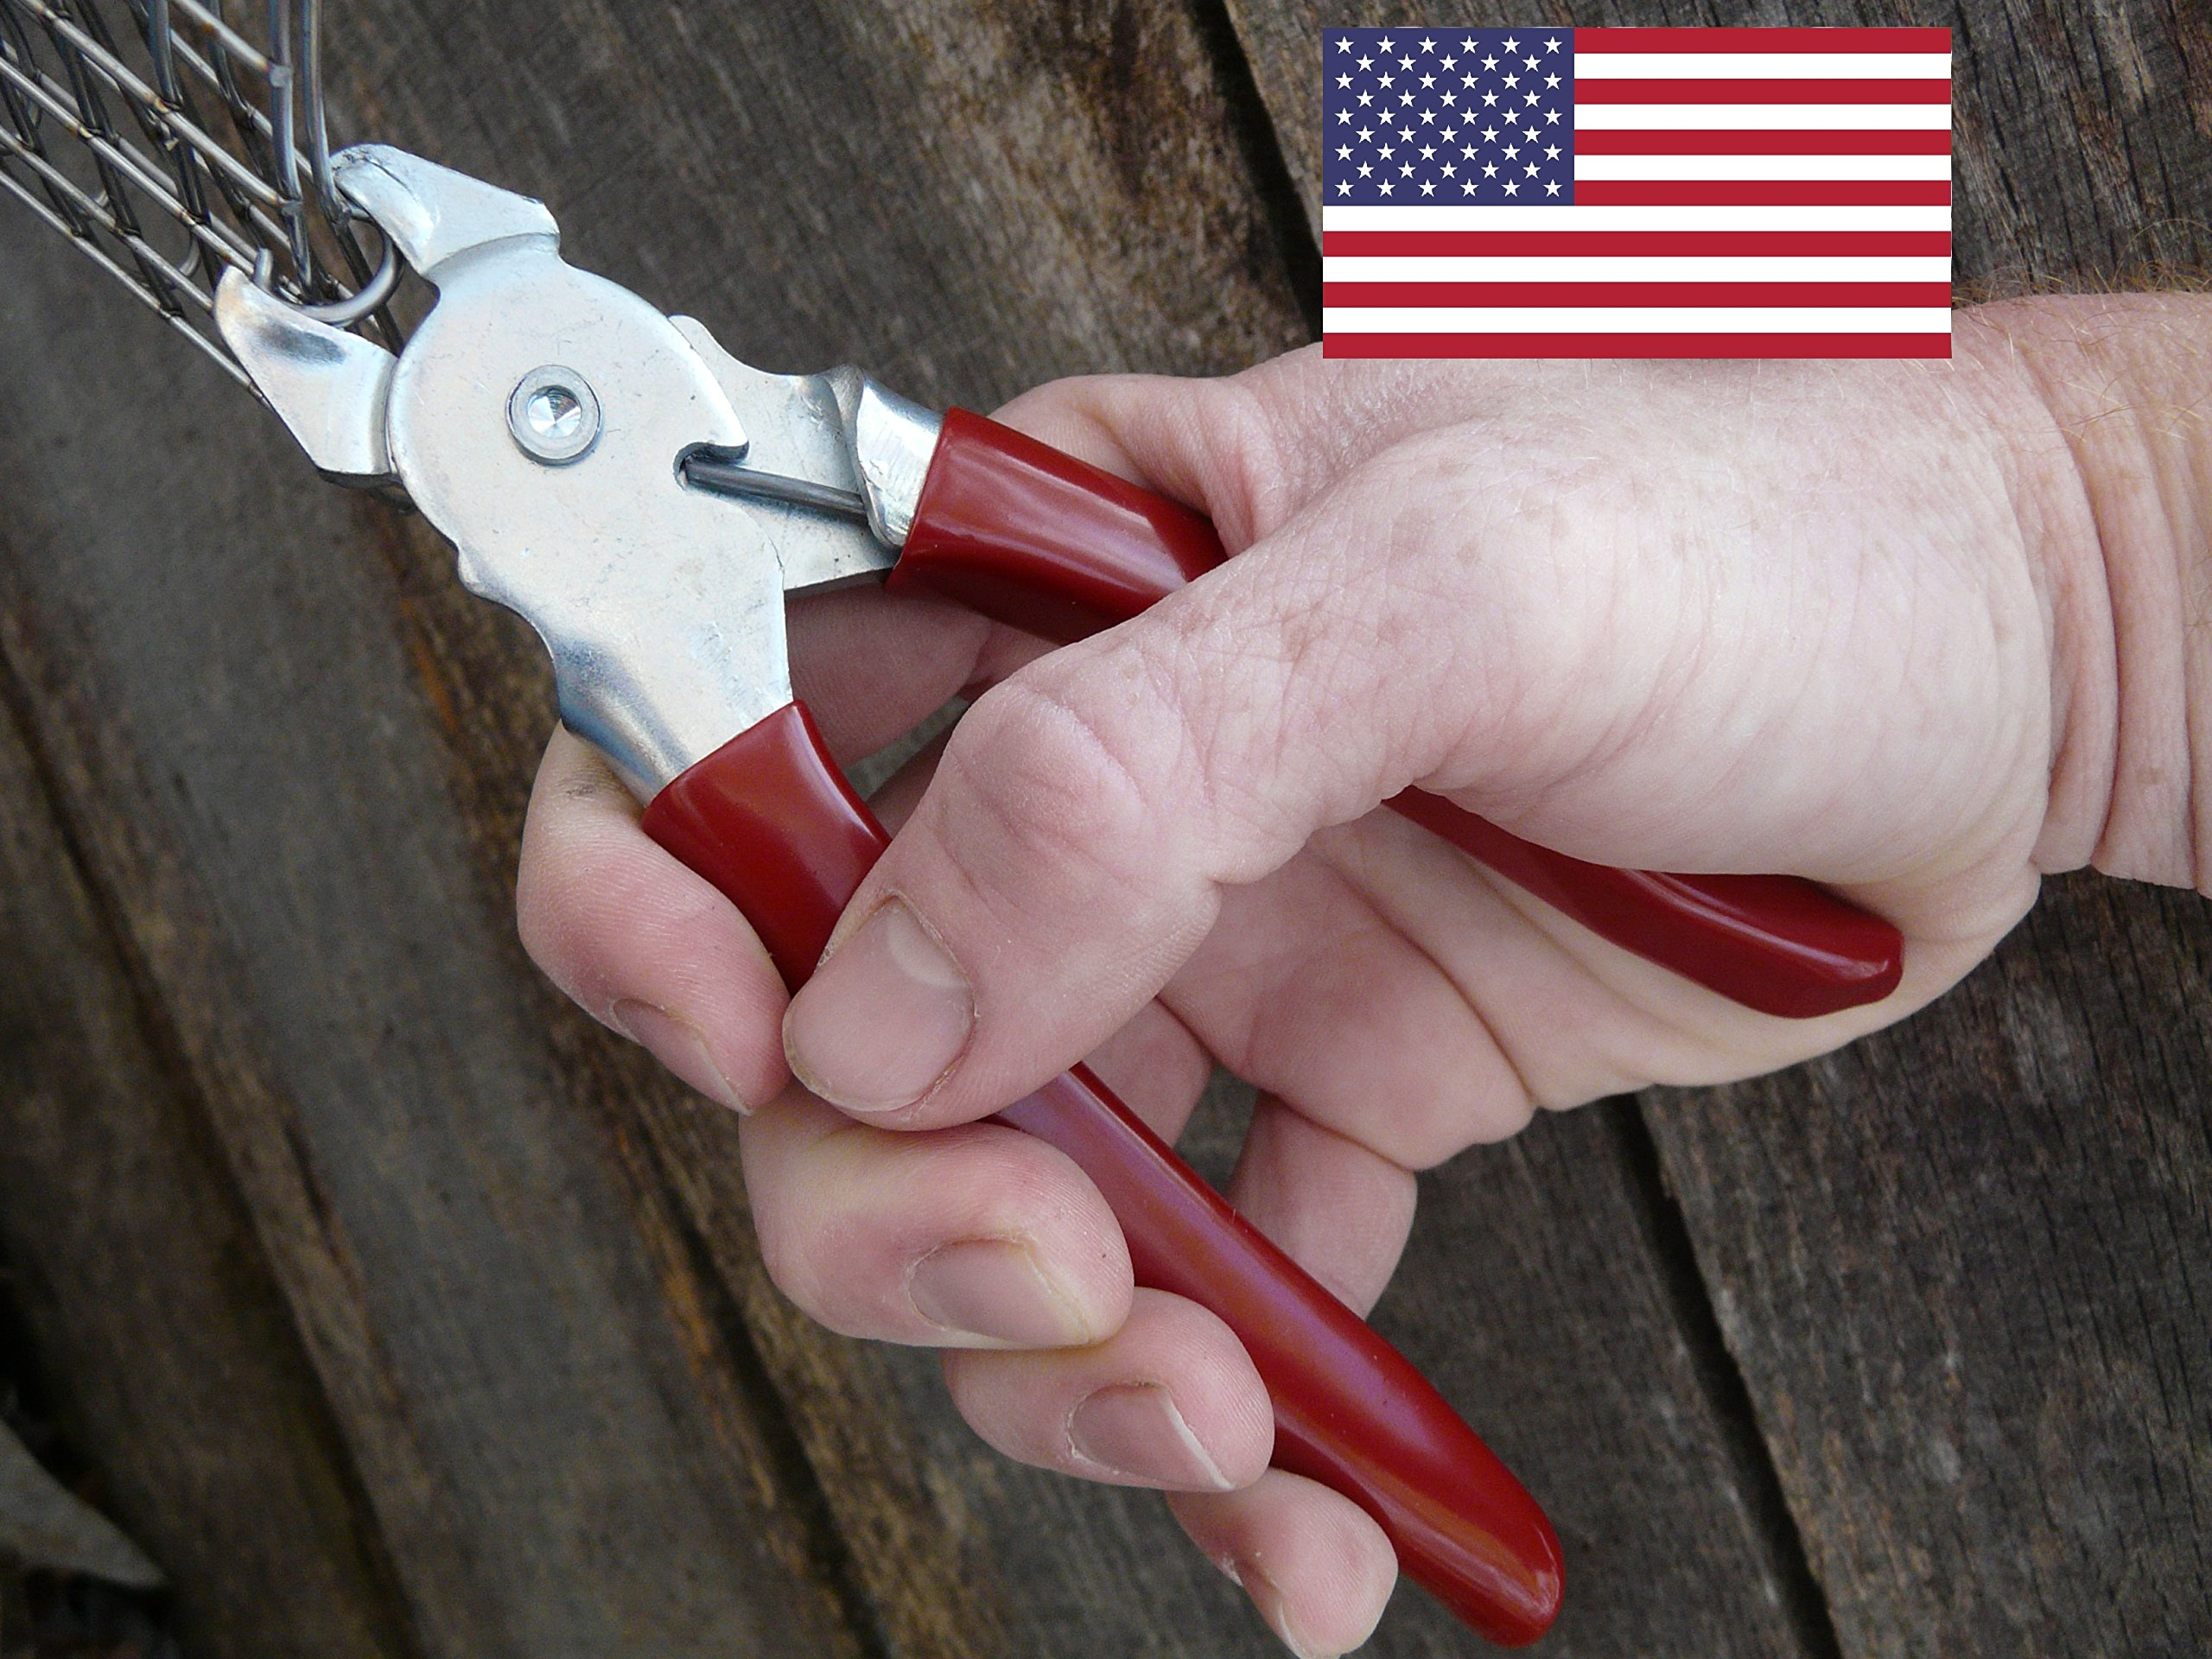 Professional quality Hog ring pliers USA MADE by Eden Farms